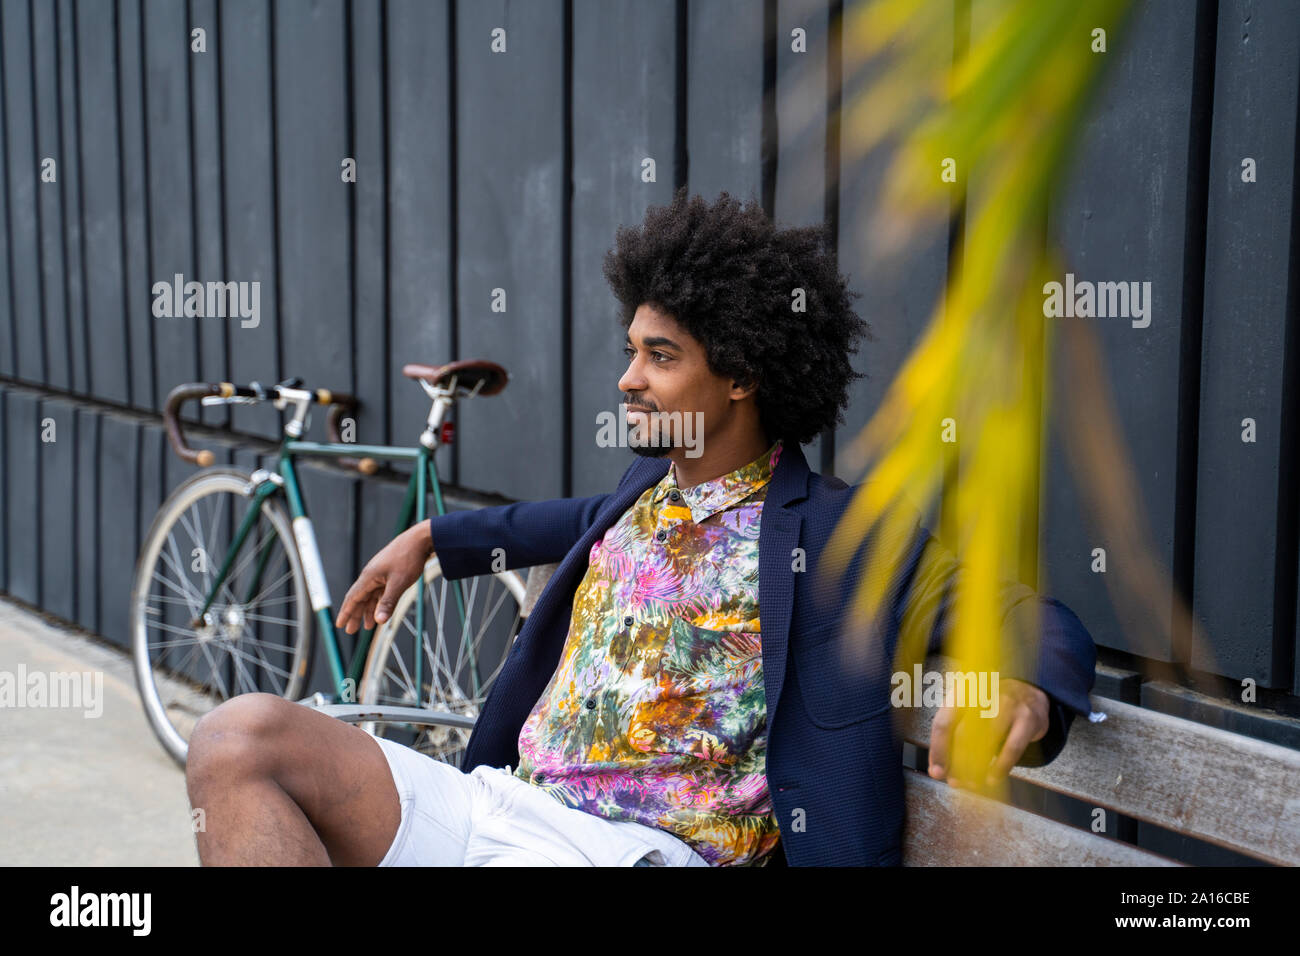 Stylish man with bicycle sitting on a bench Stock Photo